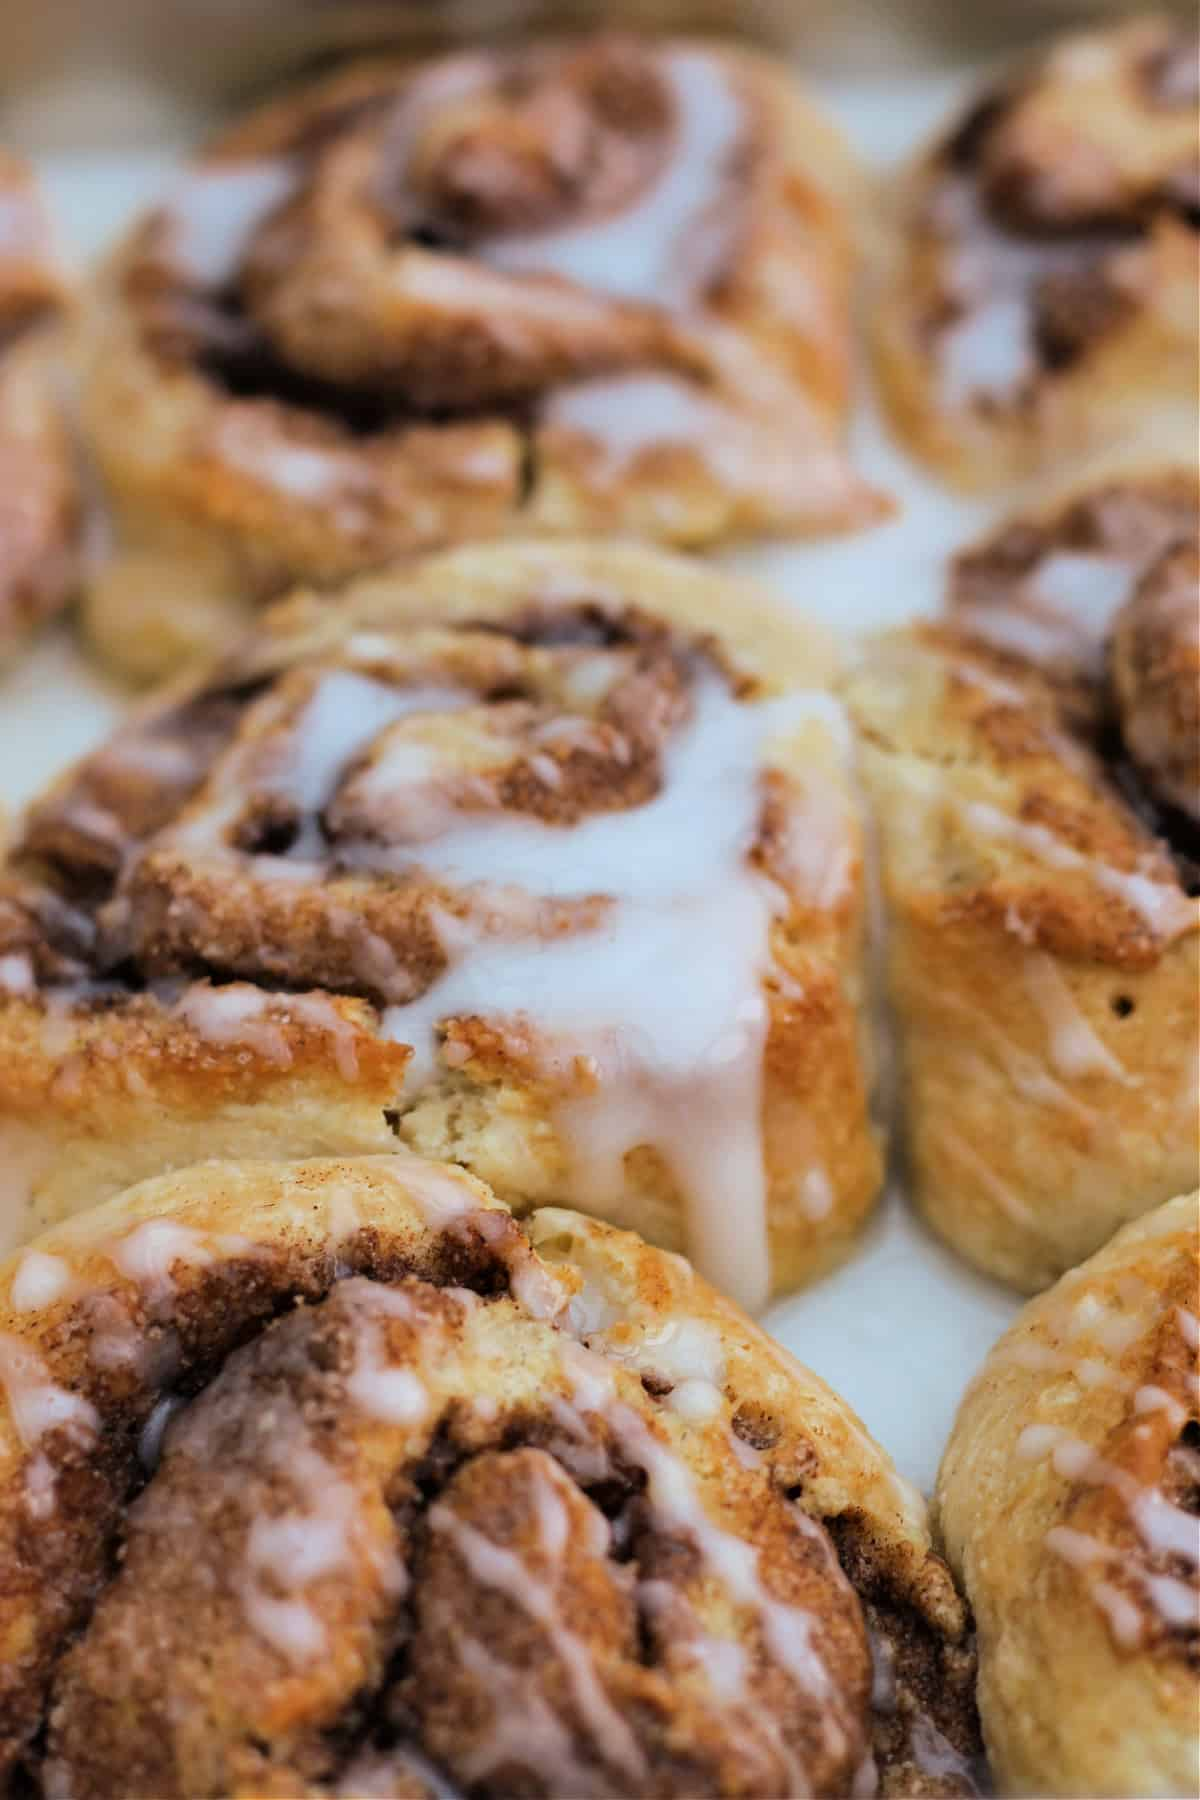 Close up of cinnamon rolls with icing drizzles.